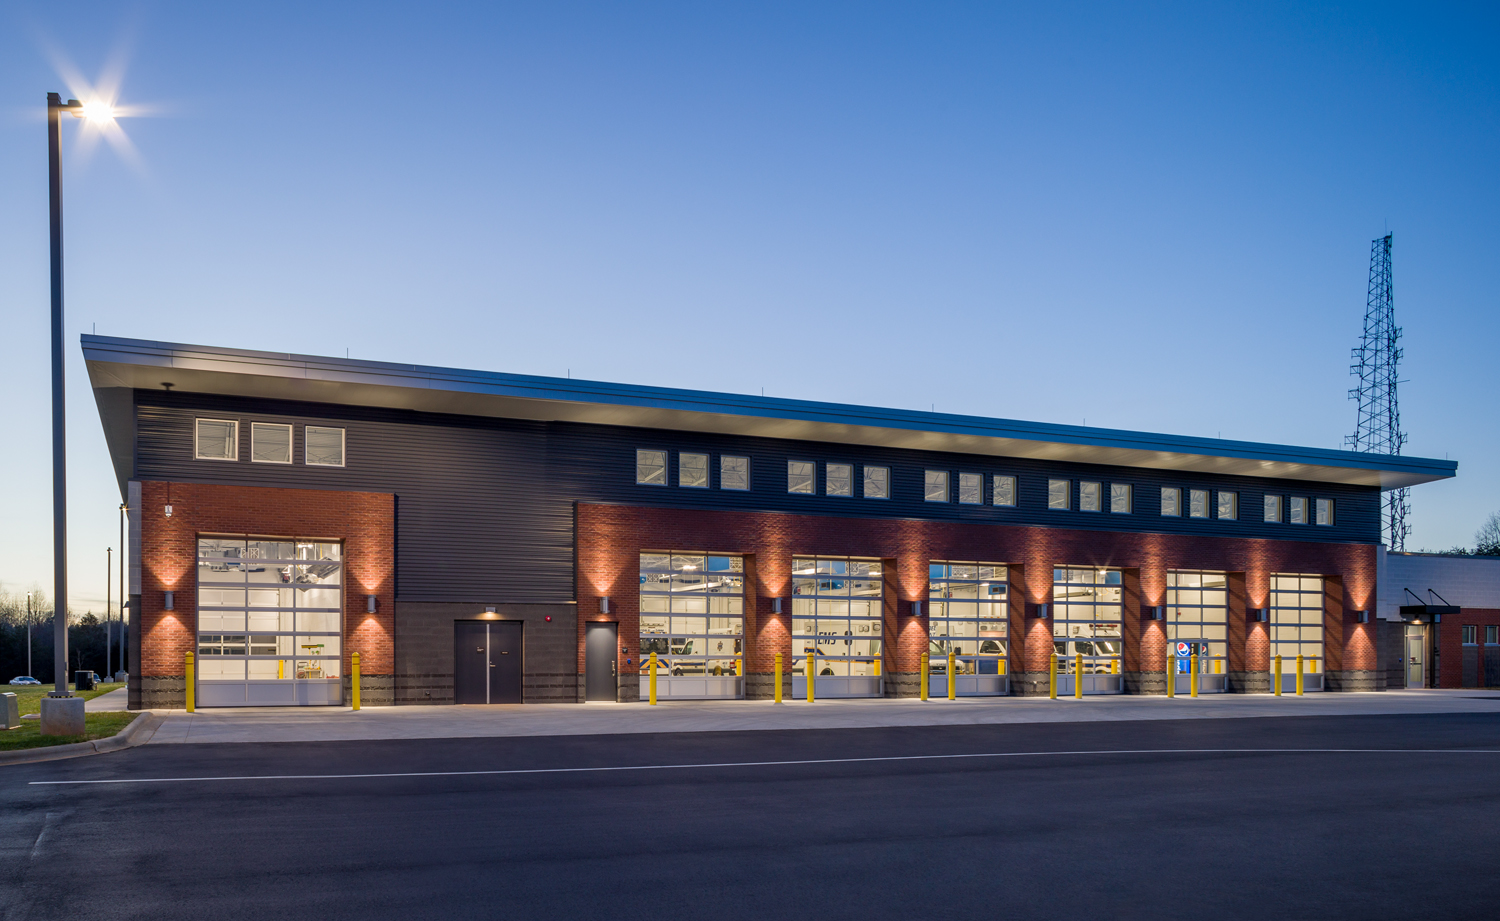 Iredell County PSC_exterior bays twilight.jpg